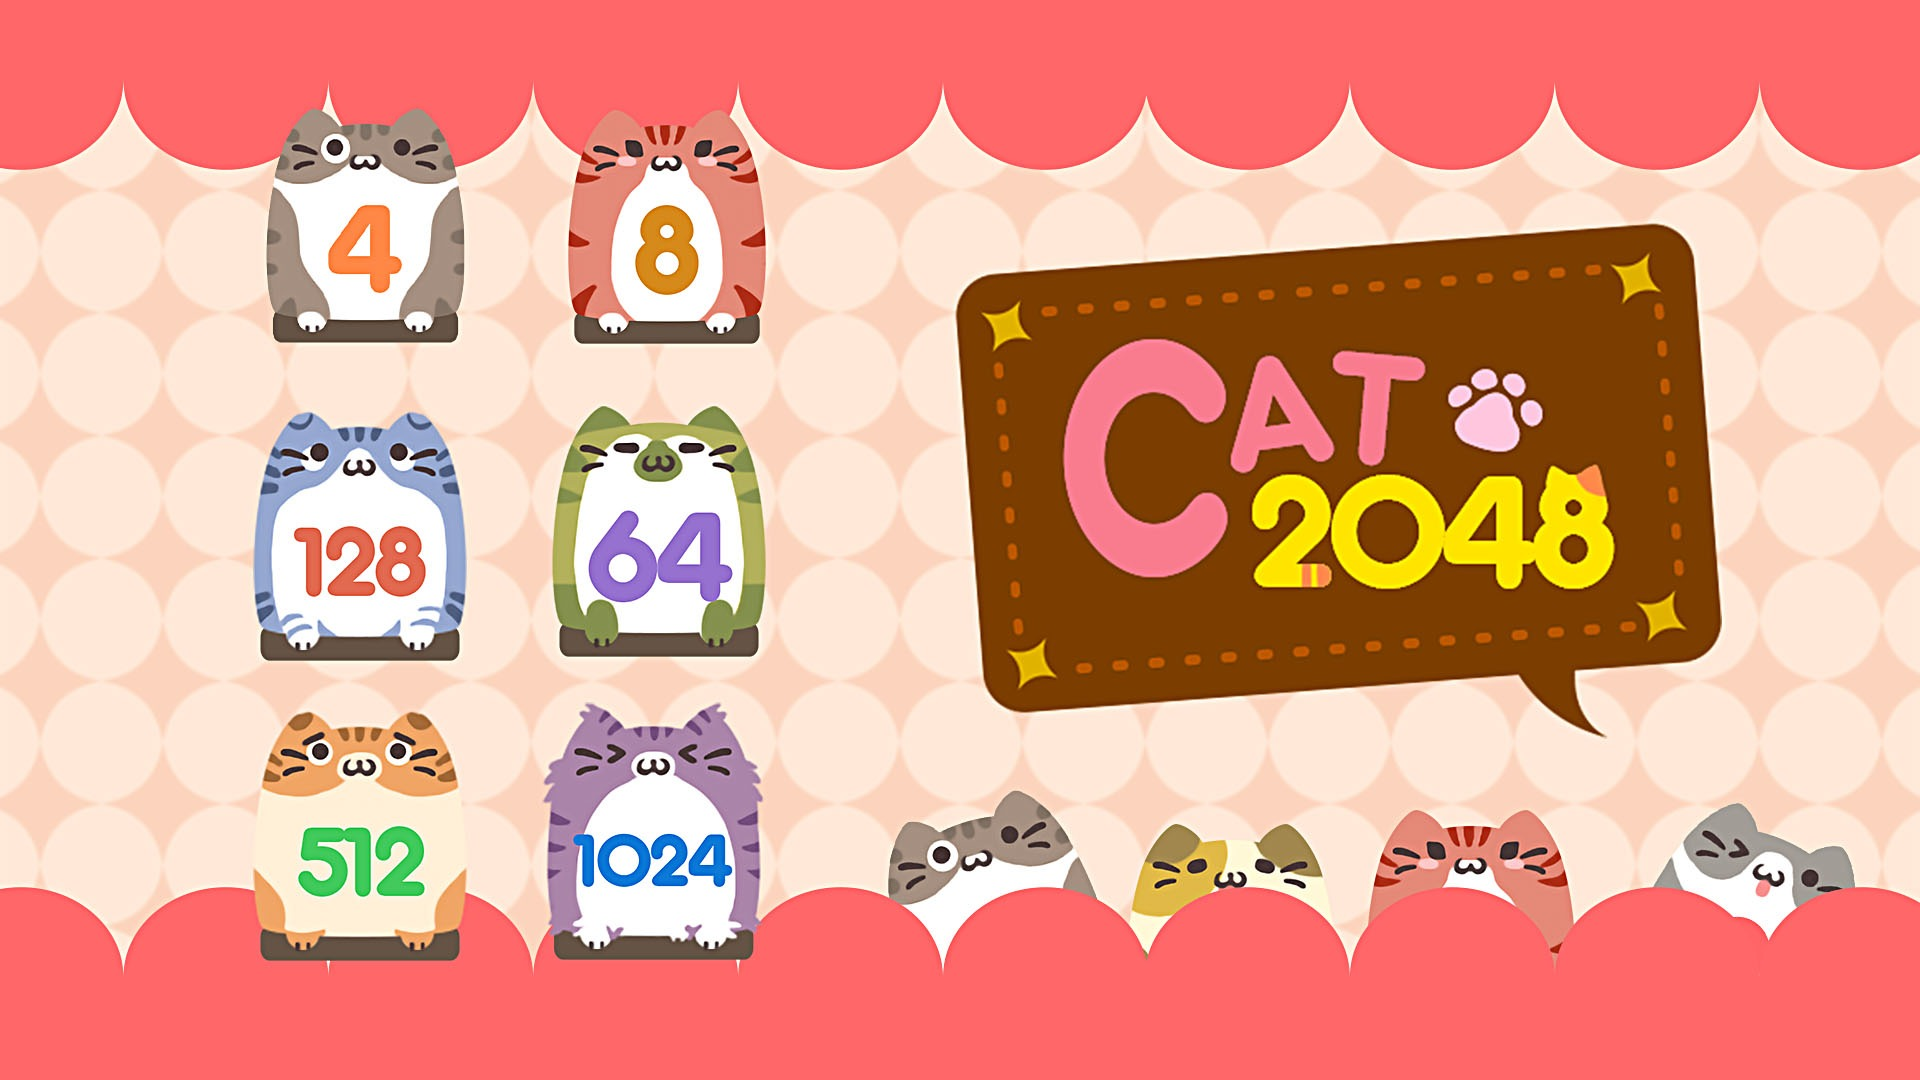 2048 Cat stats facts